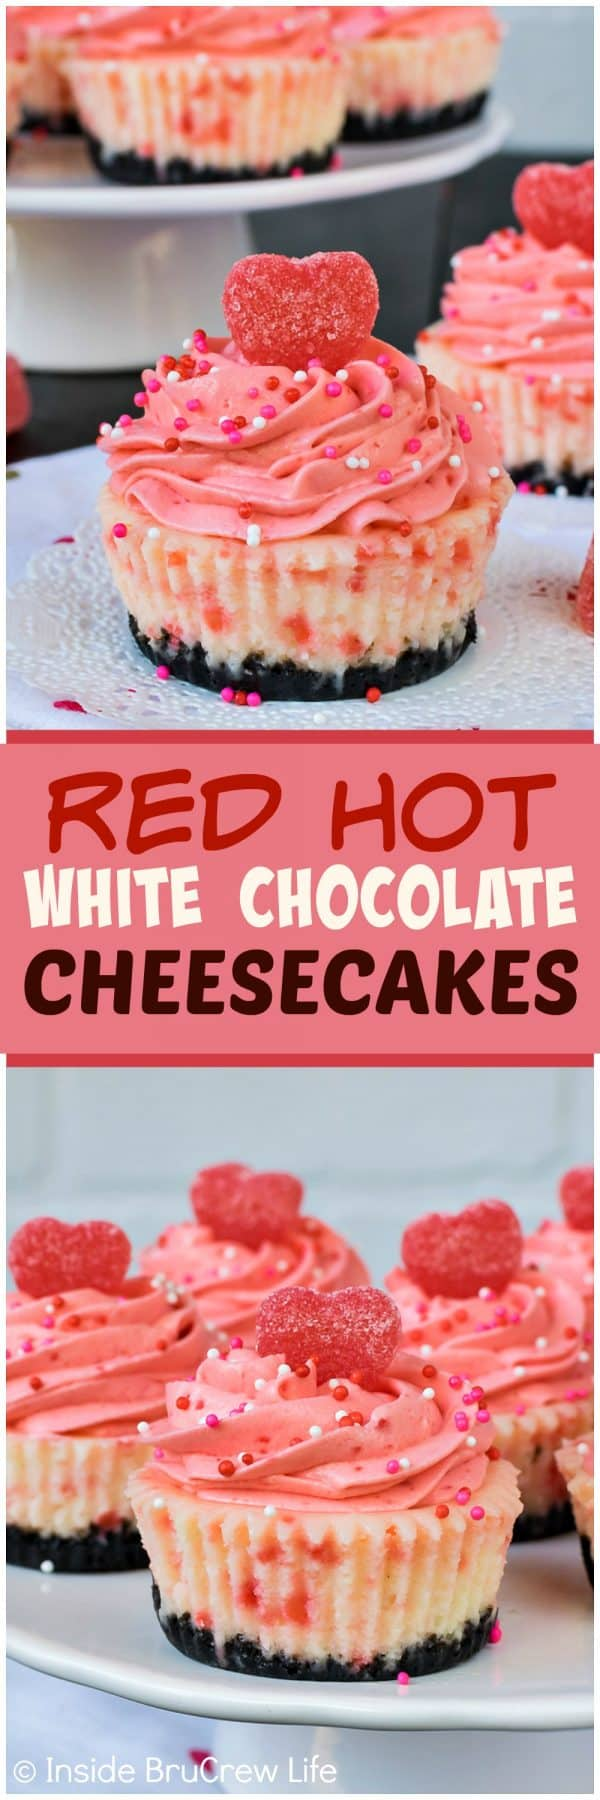 Red Hot White Chocolate Cheesecakes - sprinkles and cinnamon jelly hearts add a fun flair to the top of the pink Red Hot mousse. Pretty recipe to share at Valentine's day parties! #cheesecake #whitechocolate #cinnamon #redhot #valentinesday #Oreocookies